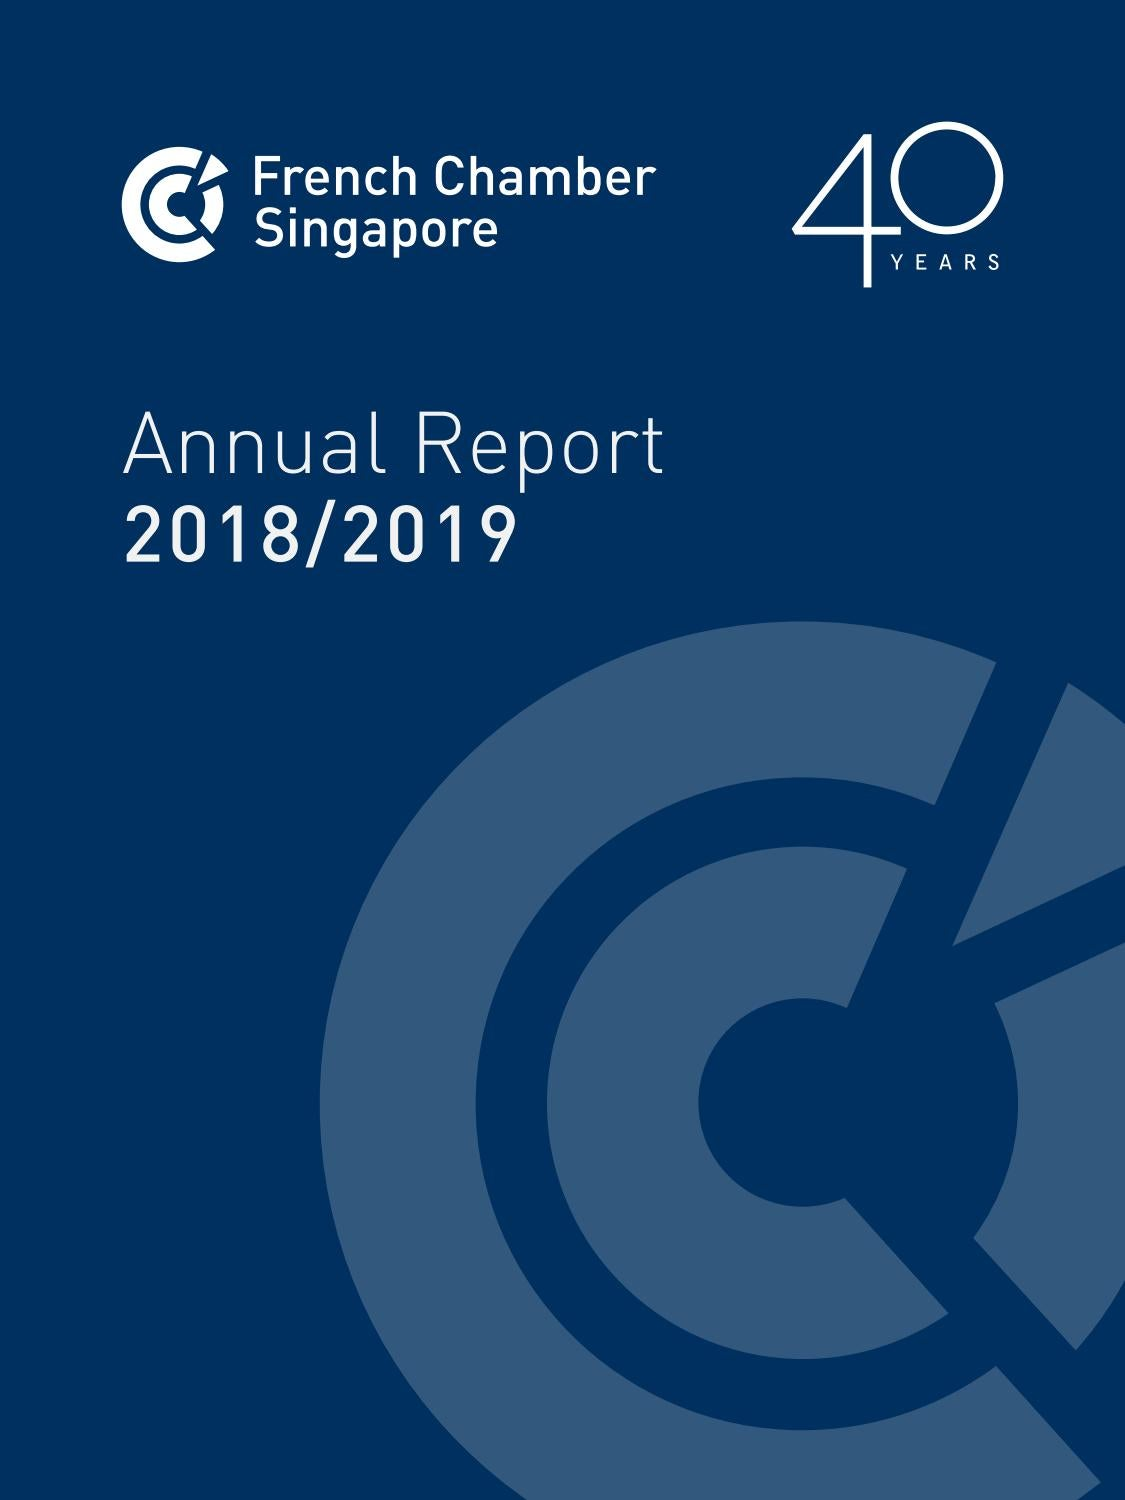 French Chamber Singapore Annual Report 2018/2019 by The